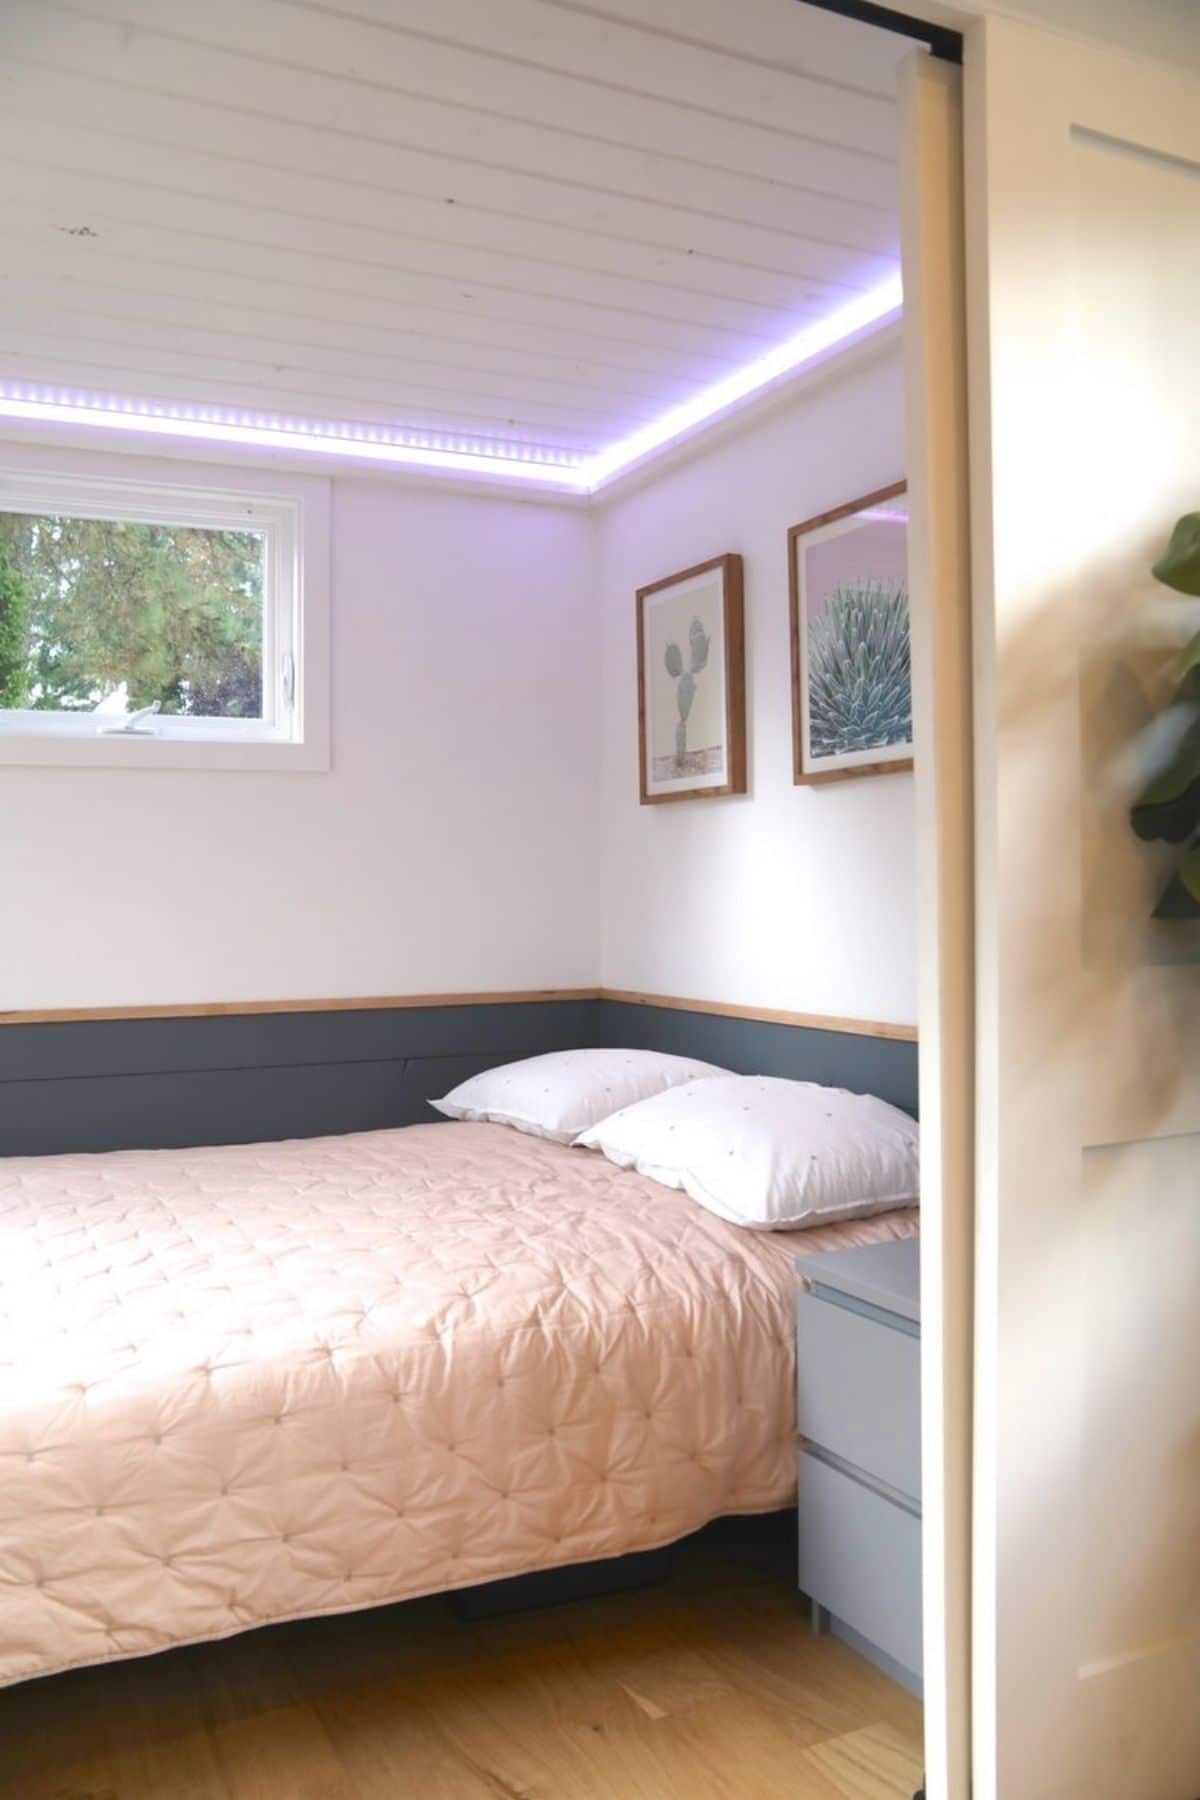 looking through door to small bedroom with bed next to blue chest of drawers